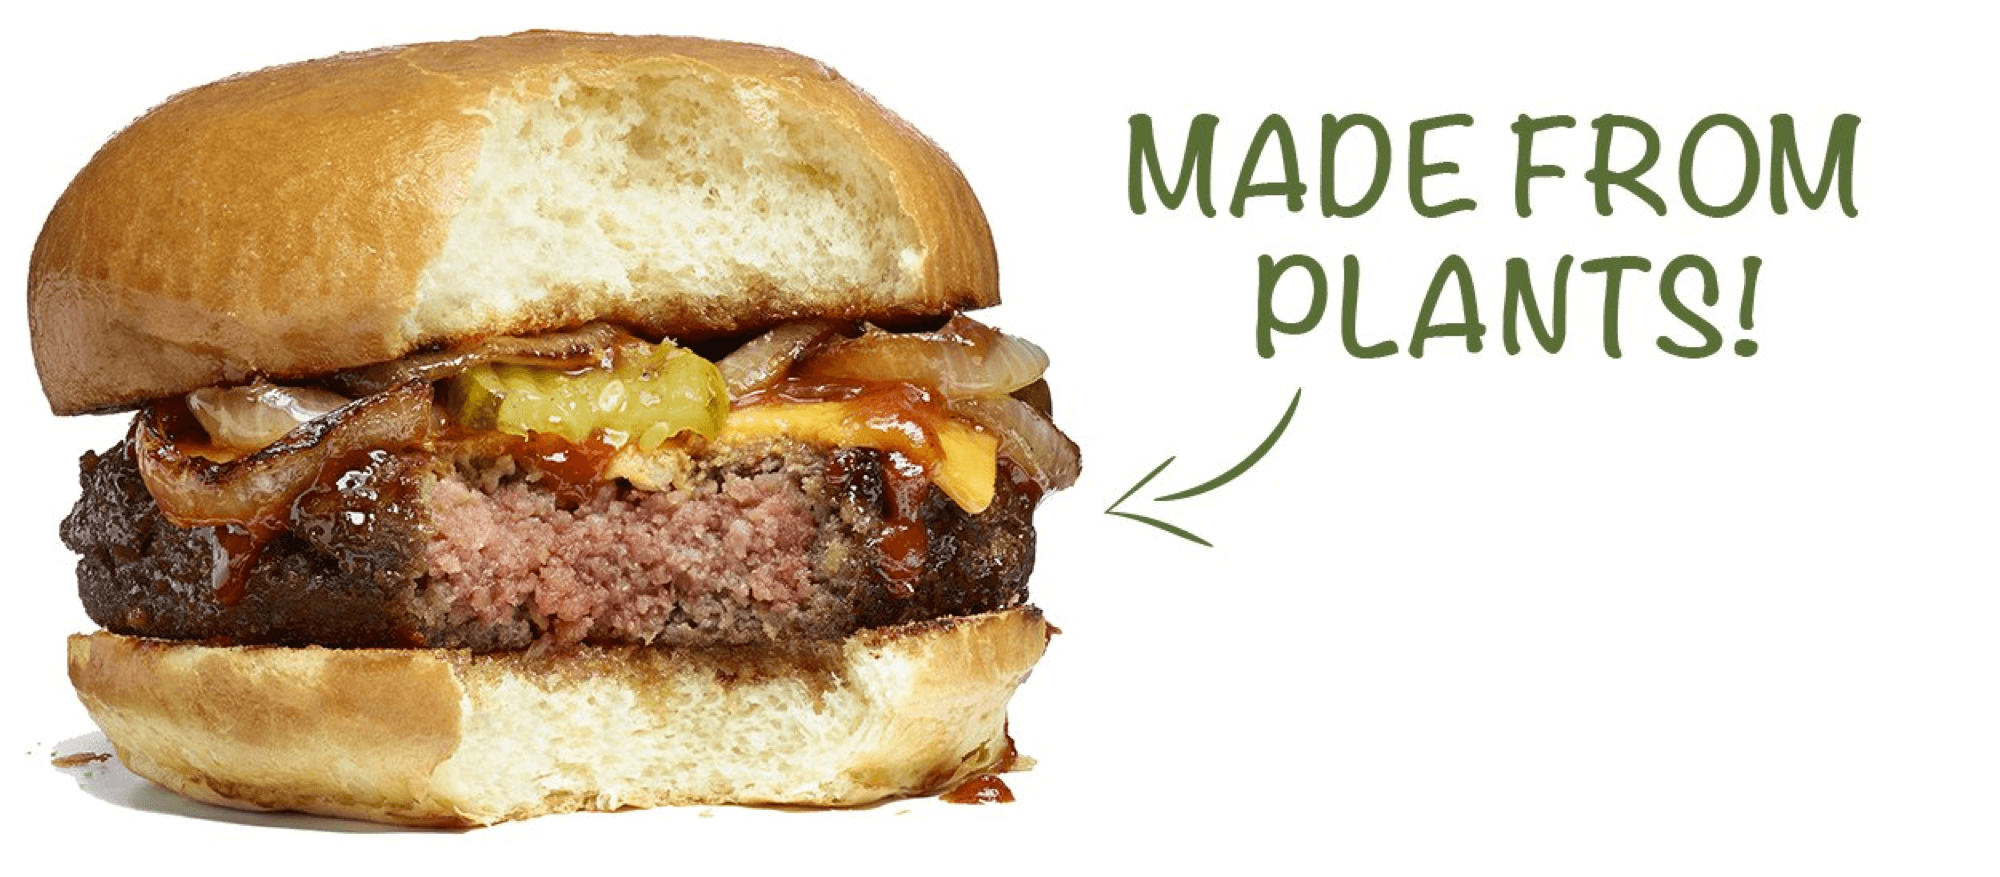 The Impossible Burger is made from all natural ingredients like wheat, coconut oil and potatoes, but it has very unique characteristics.